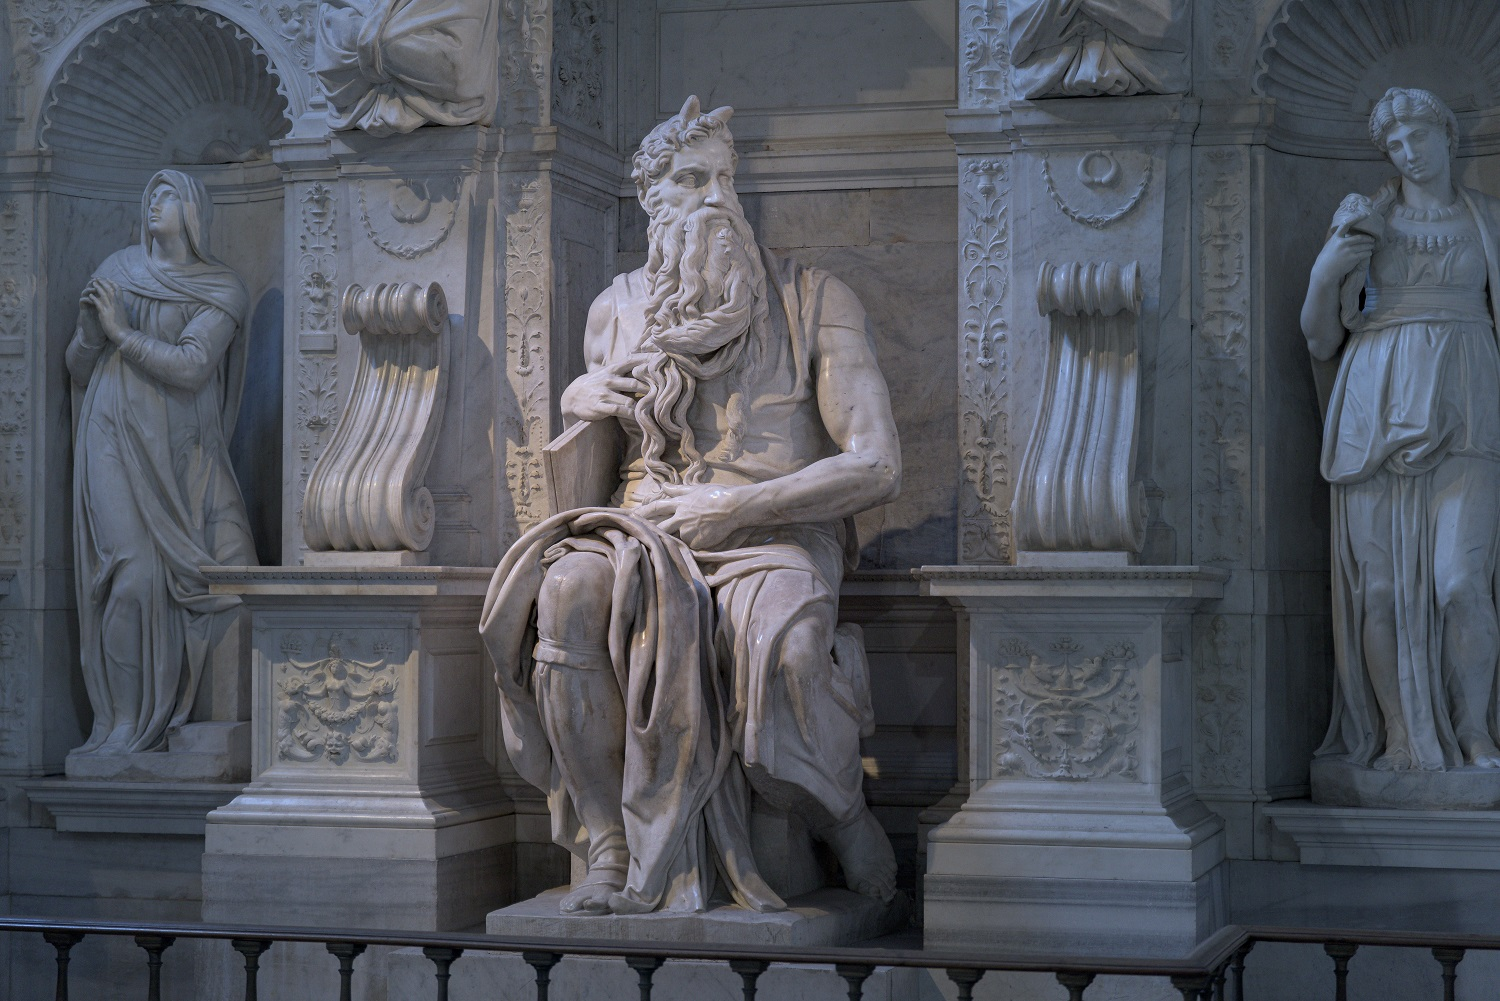 Moses sculpture by Michelangelo in San Petrio in Vincoli, Rome, Italy